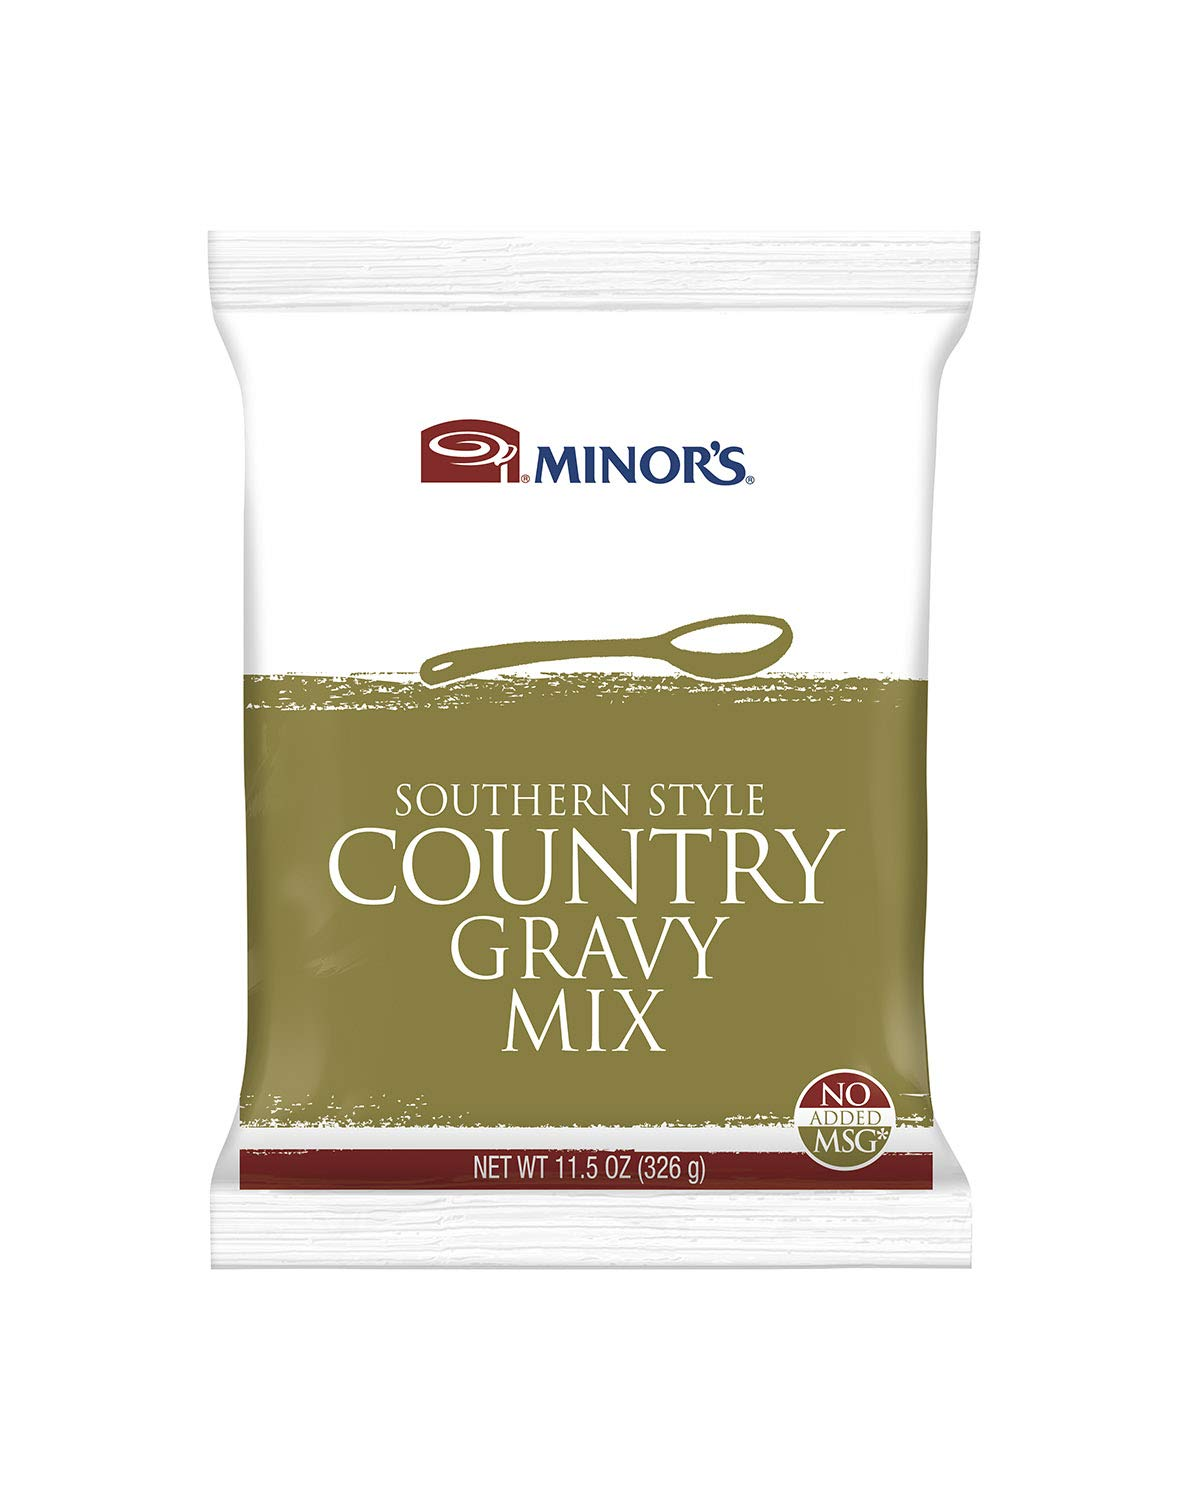 Nestle Minors No Added MSG Southern Style Gravy Mix, 11.25 Ounce - 12 per case.